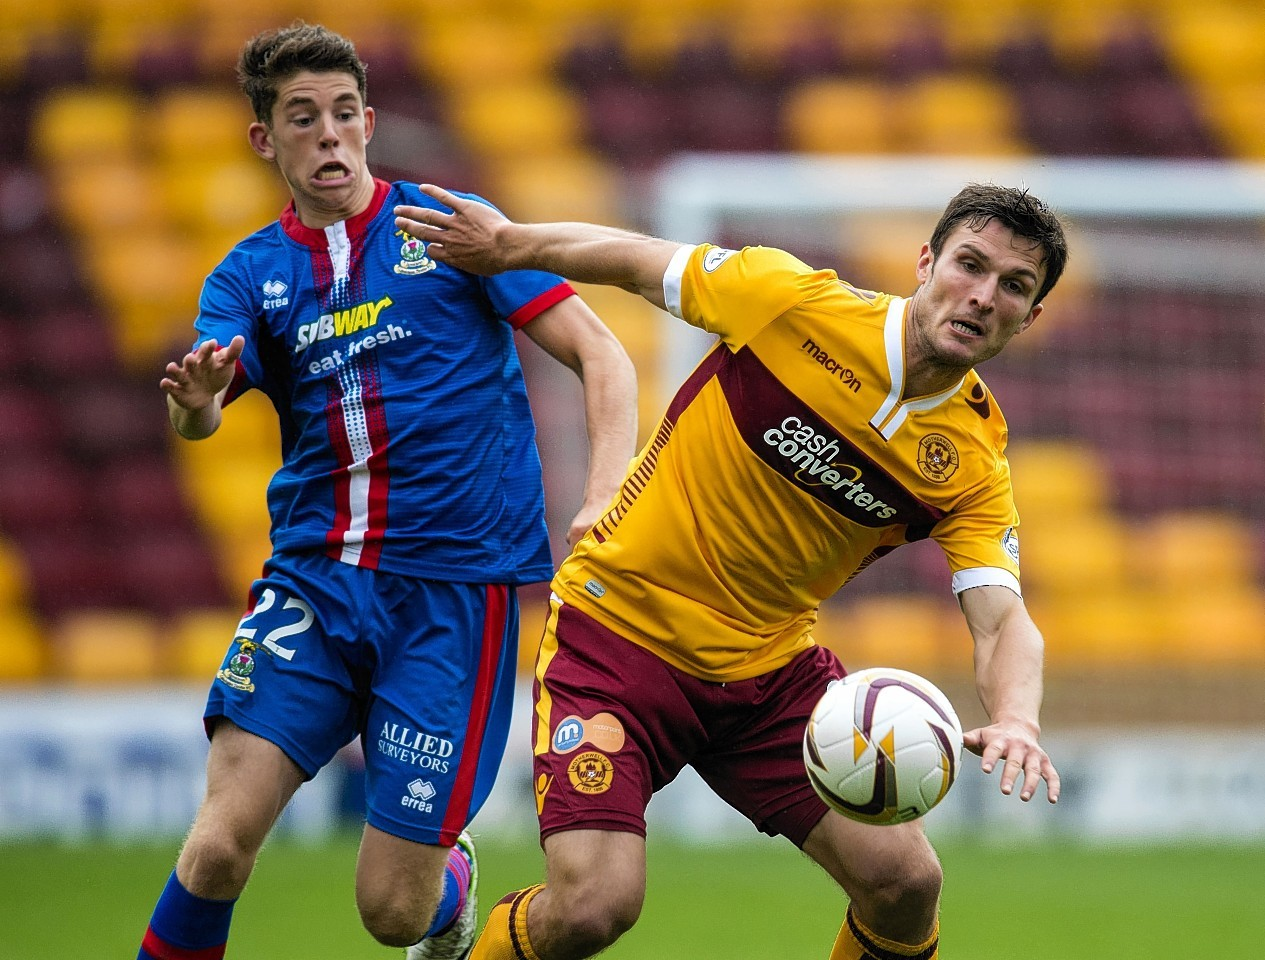 Ryan Christie and John Sutton challenge for the ball.